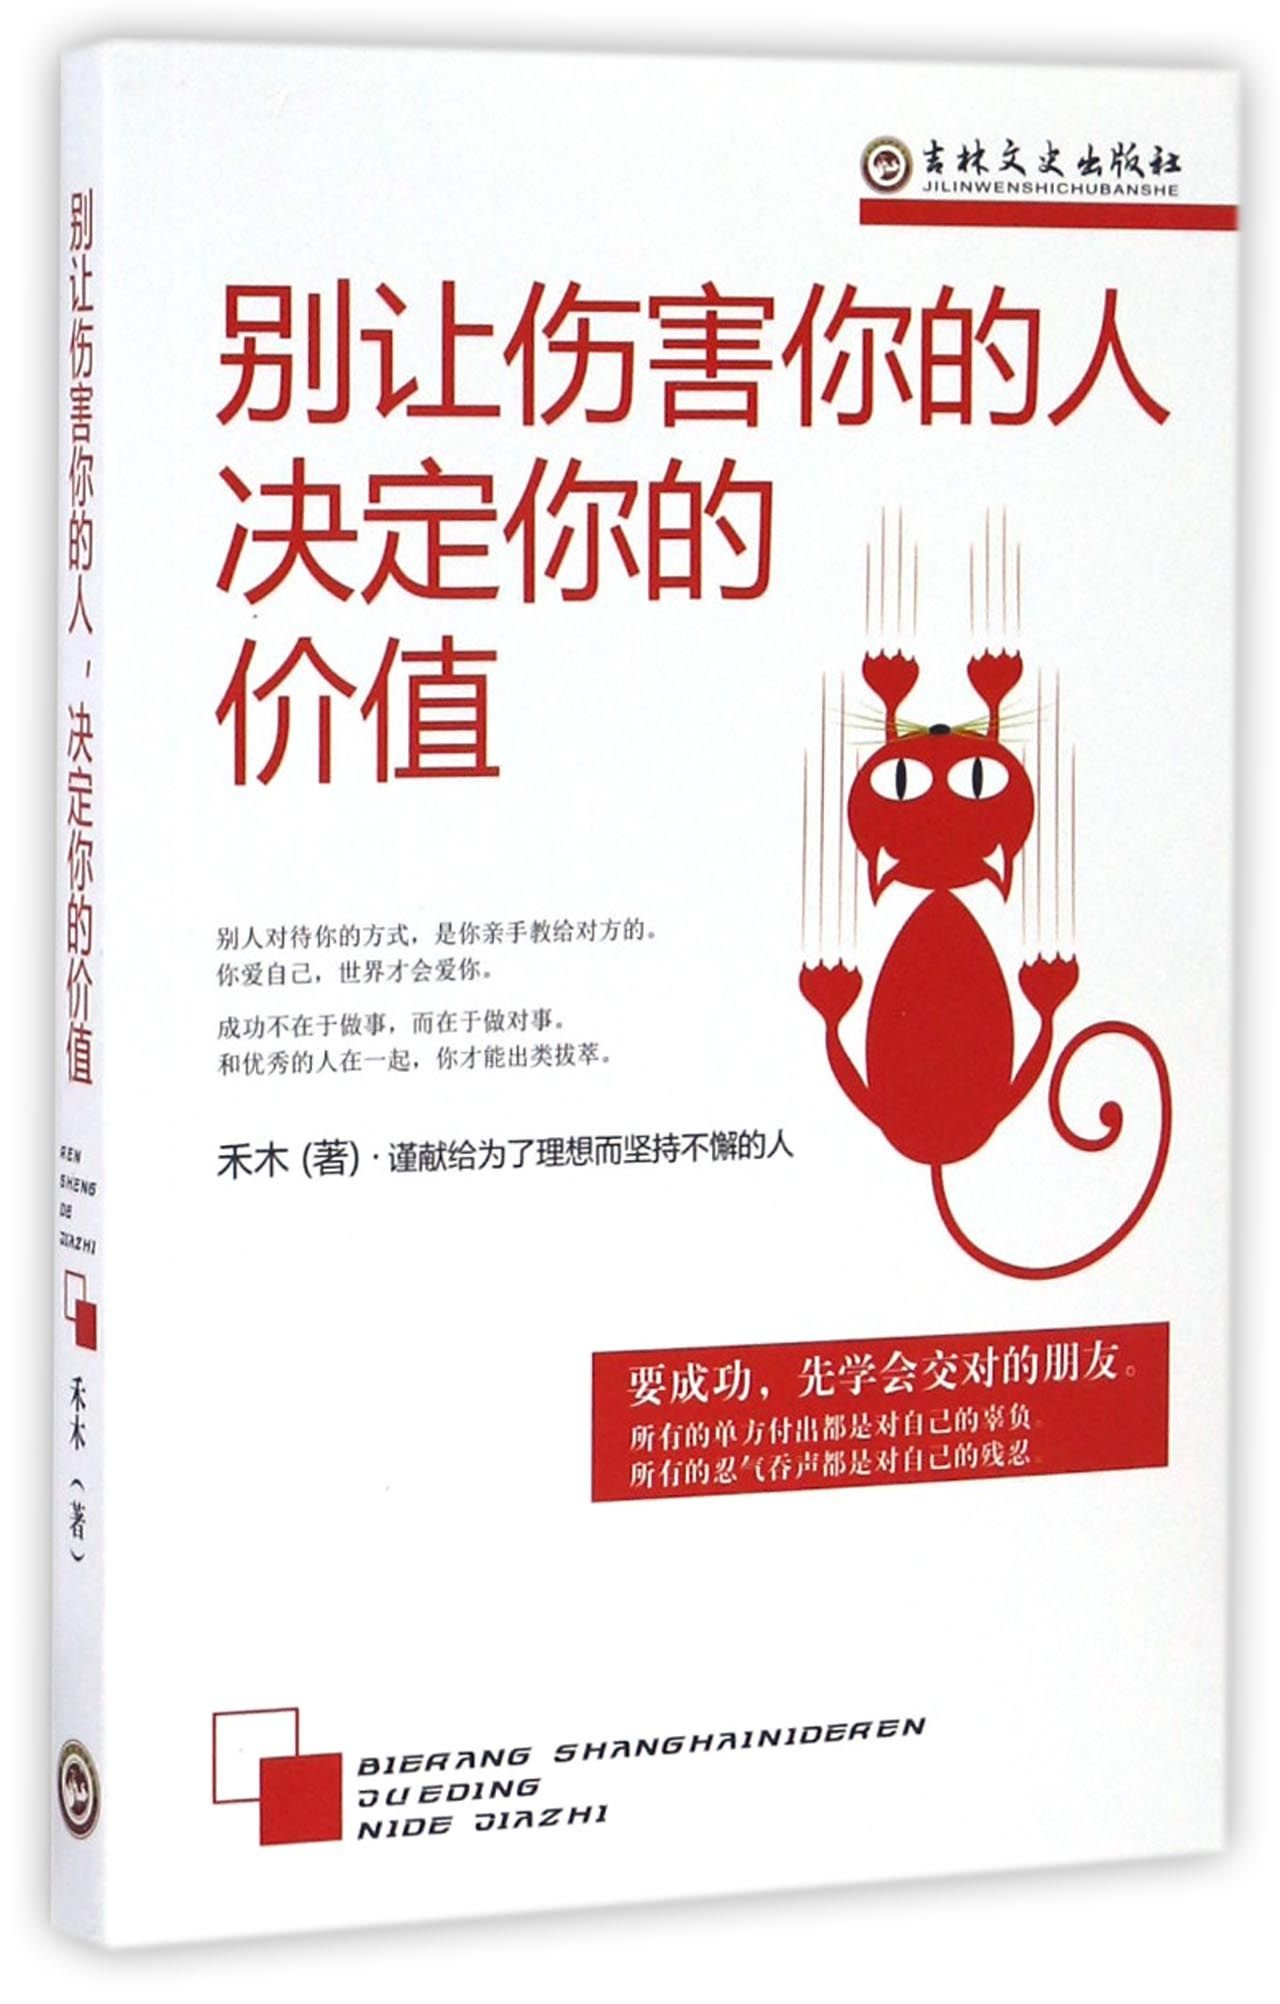 Read Online Don't Let People Hurting you Determine Your Value (Chinese Edition) PDF